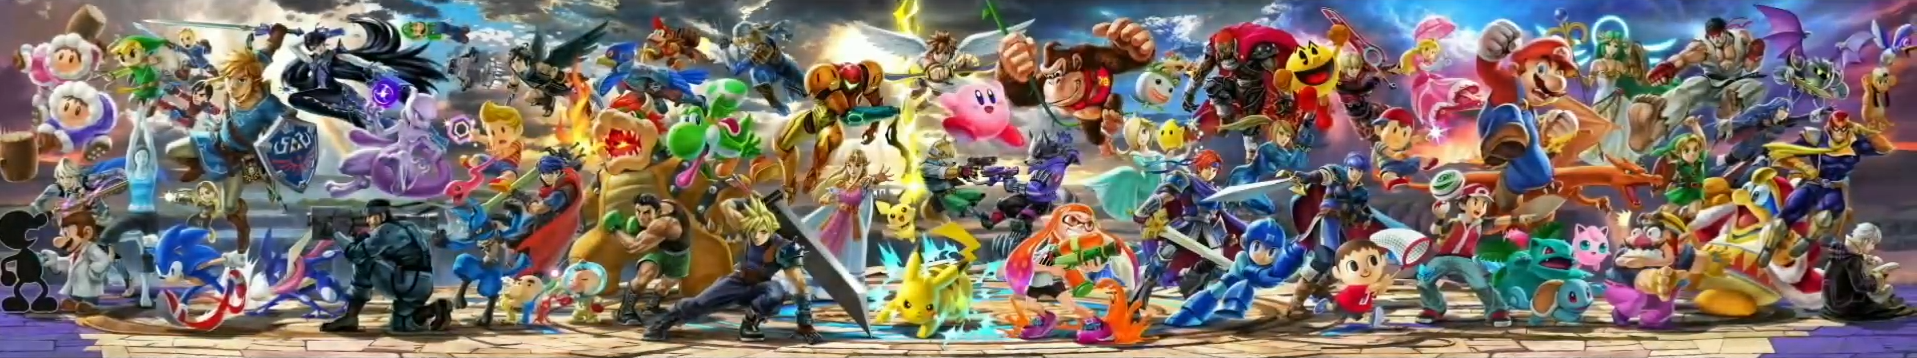 Super Smash Bros. Ultimate Alle Kämpfer